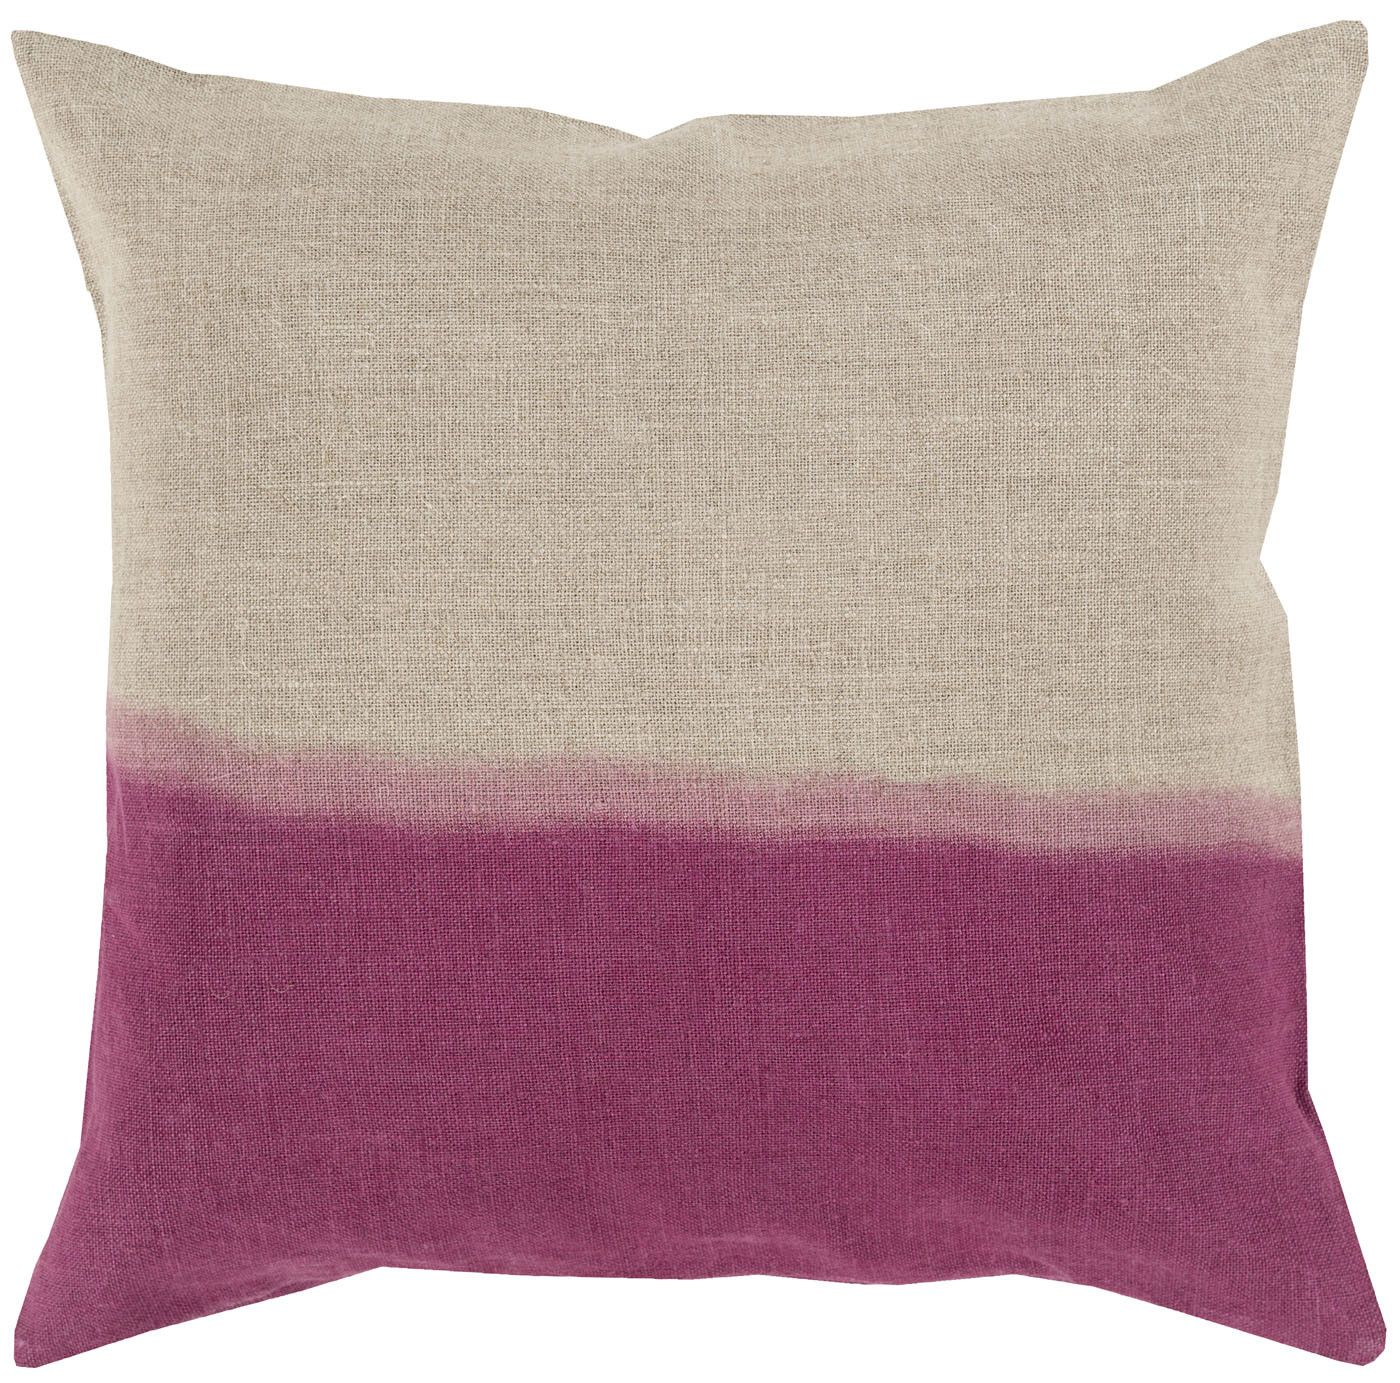 throw accent purple elegant pillow ideas designs adorable graphics of pillows